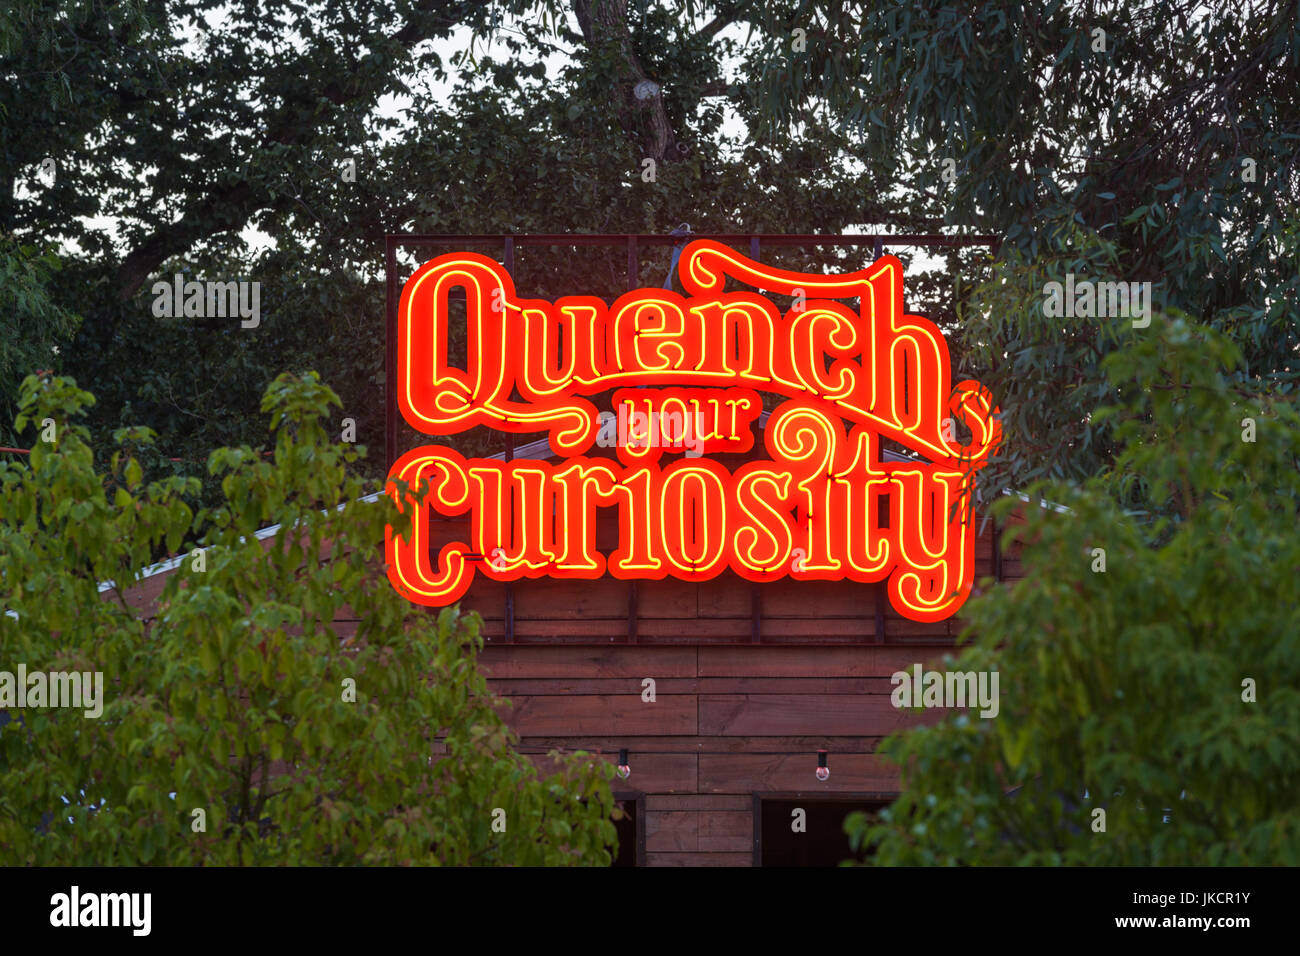 Australia, South Australia, Adelaide, Rundle Park, The Garden of Unearthly Delights, Quench Your Curiosity, neon - Stock Image